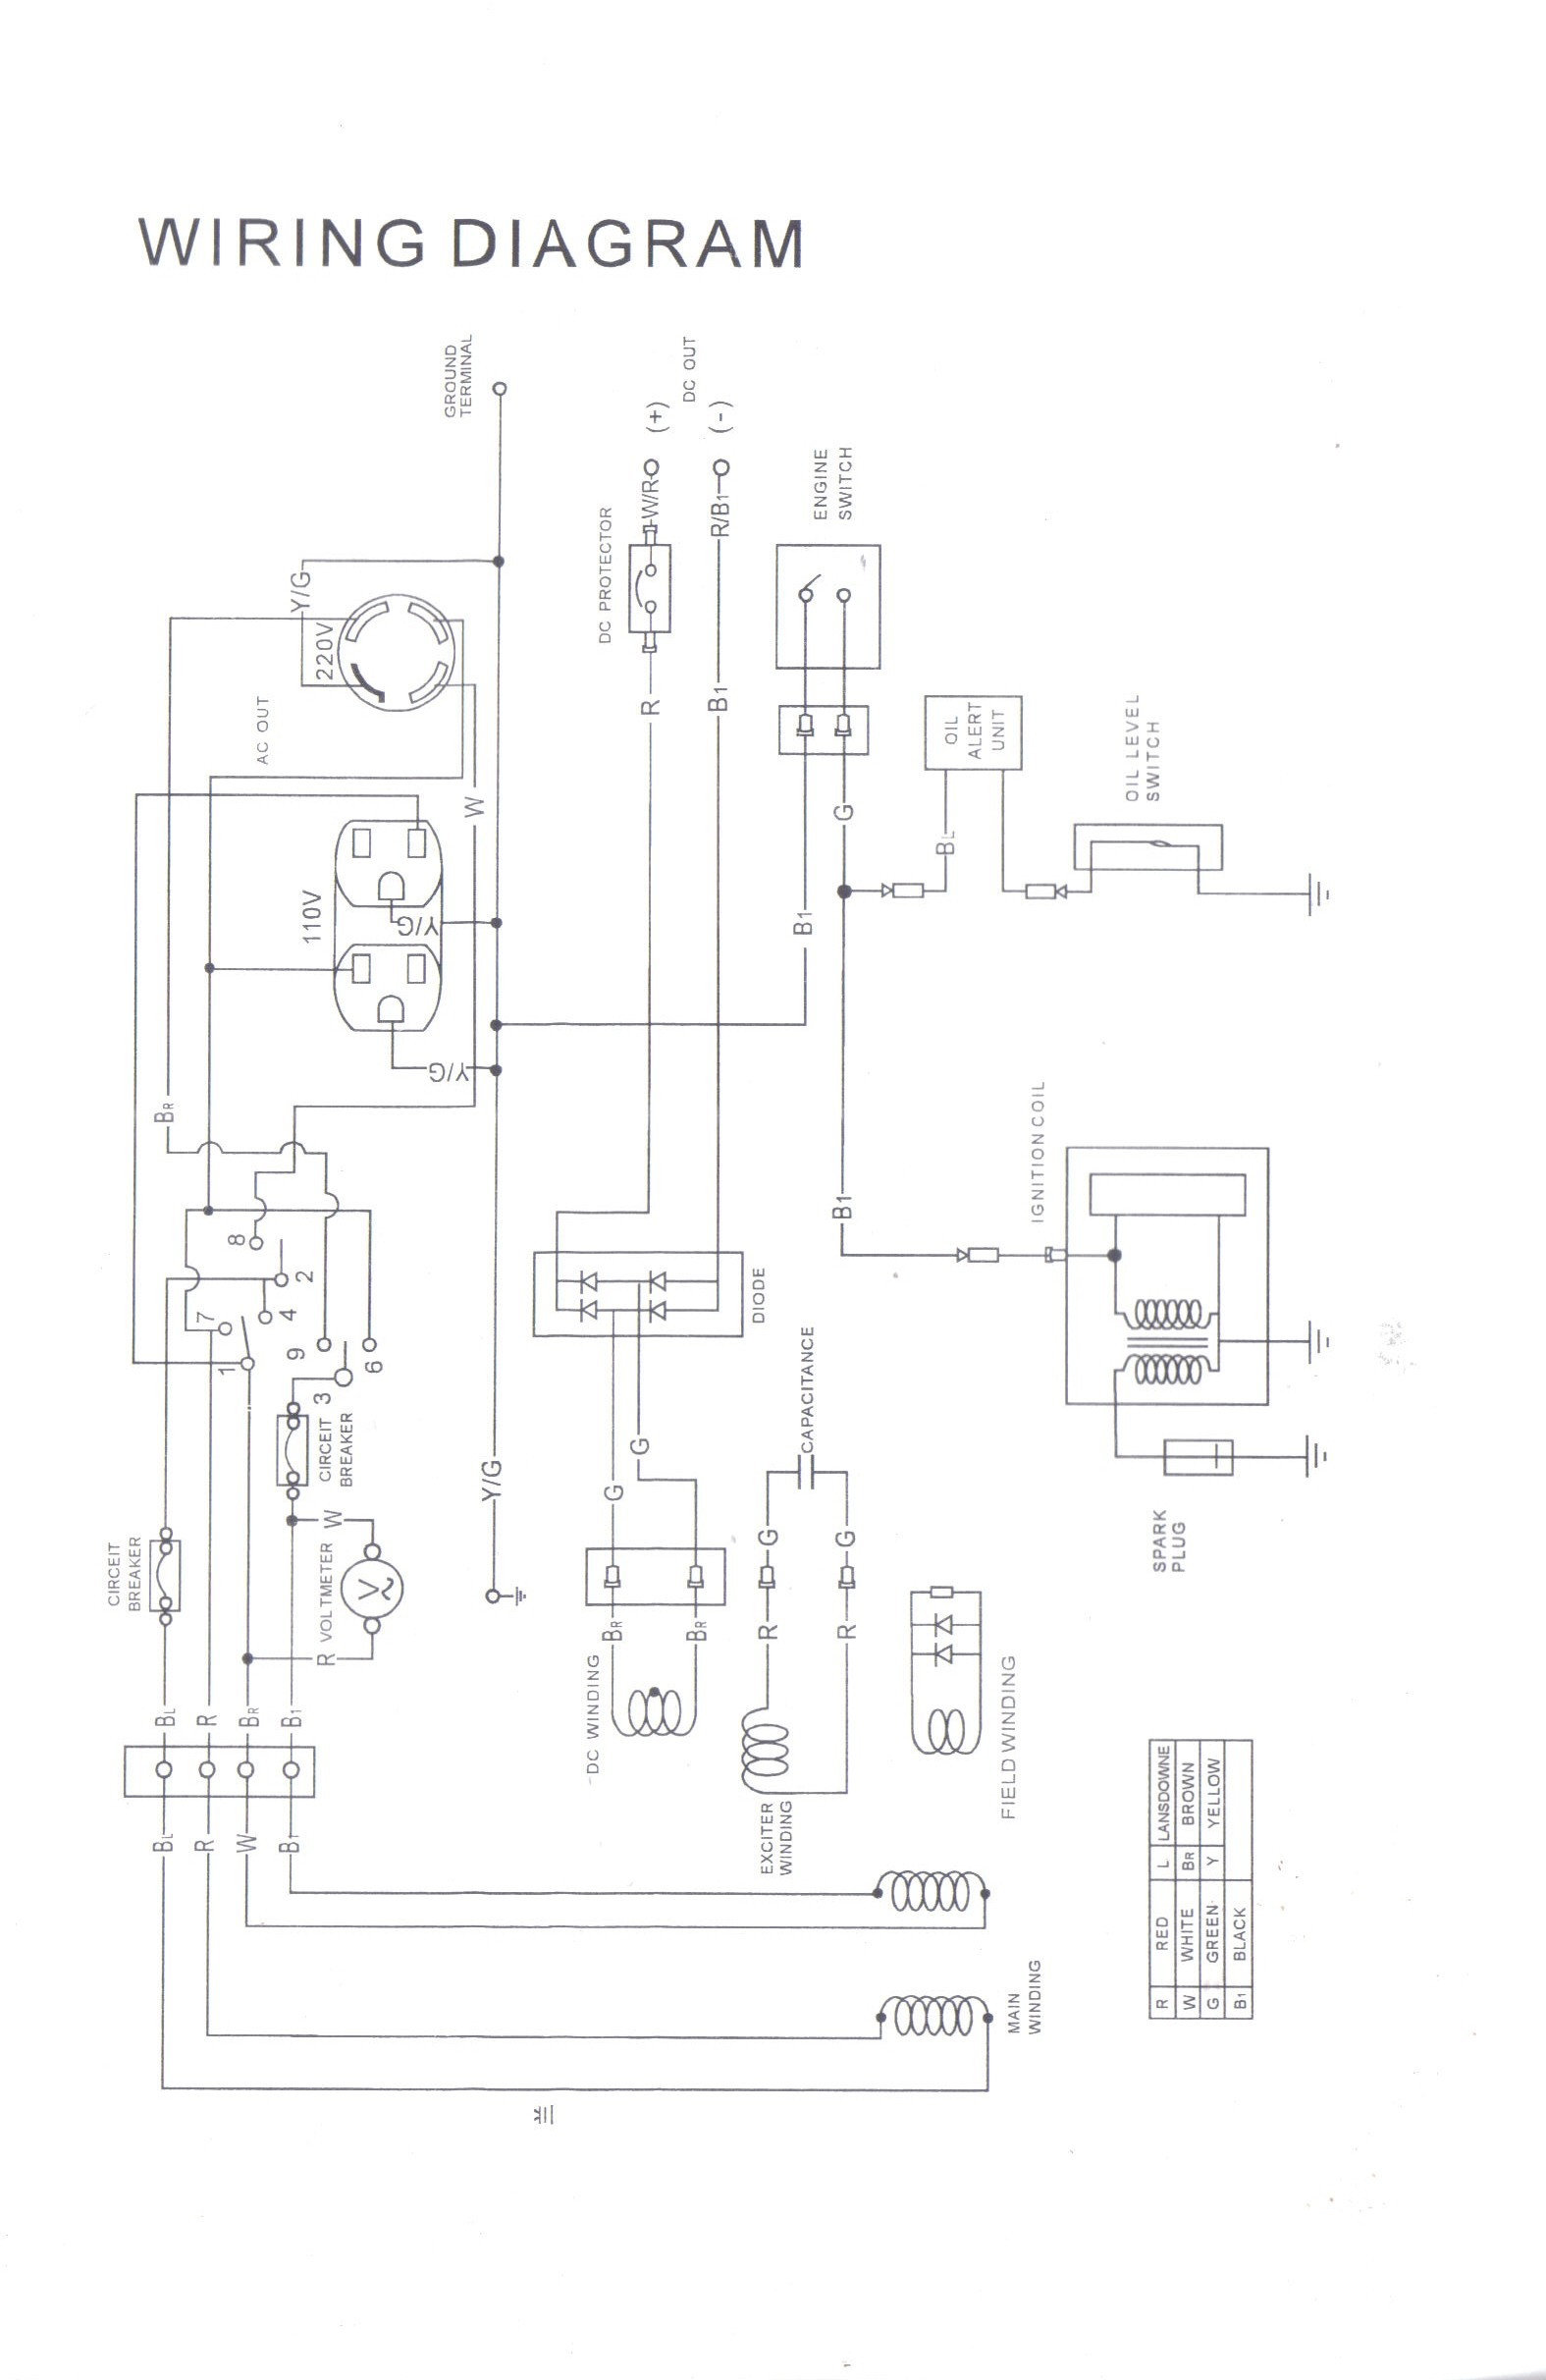 Wiring Diagram For Onan Generator 4500 Onan 4500 Generator